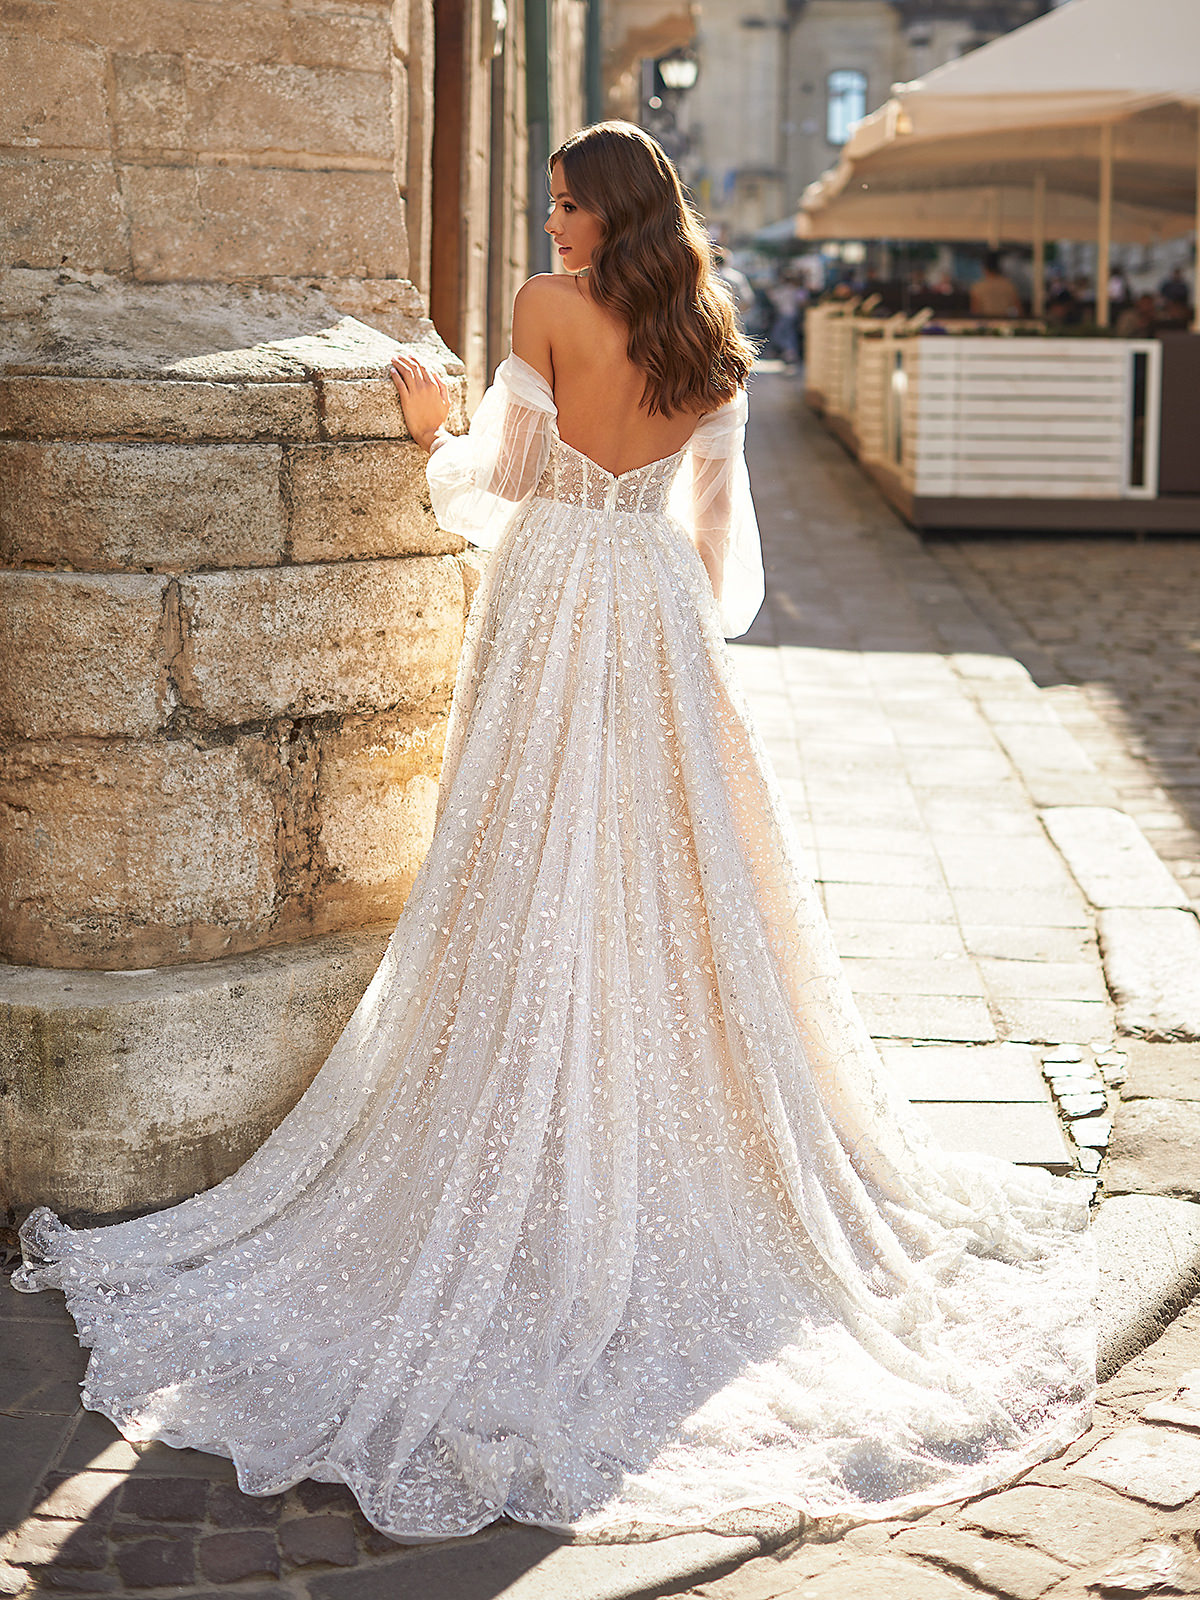 Designer Wedding Dresses by Moonlight Couture 2022 Bridal Collection - H1482